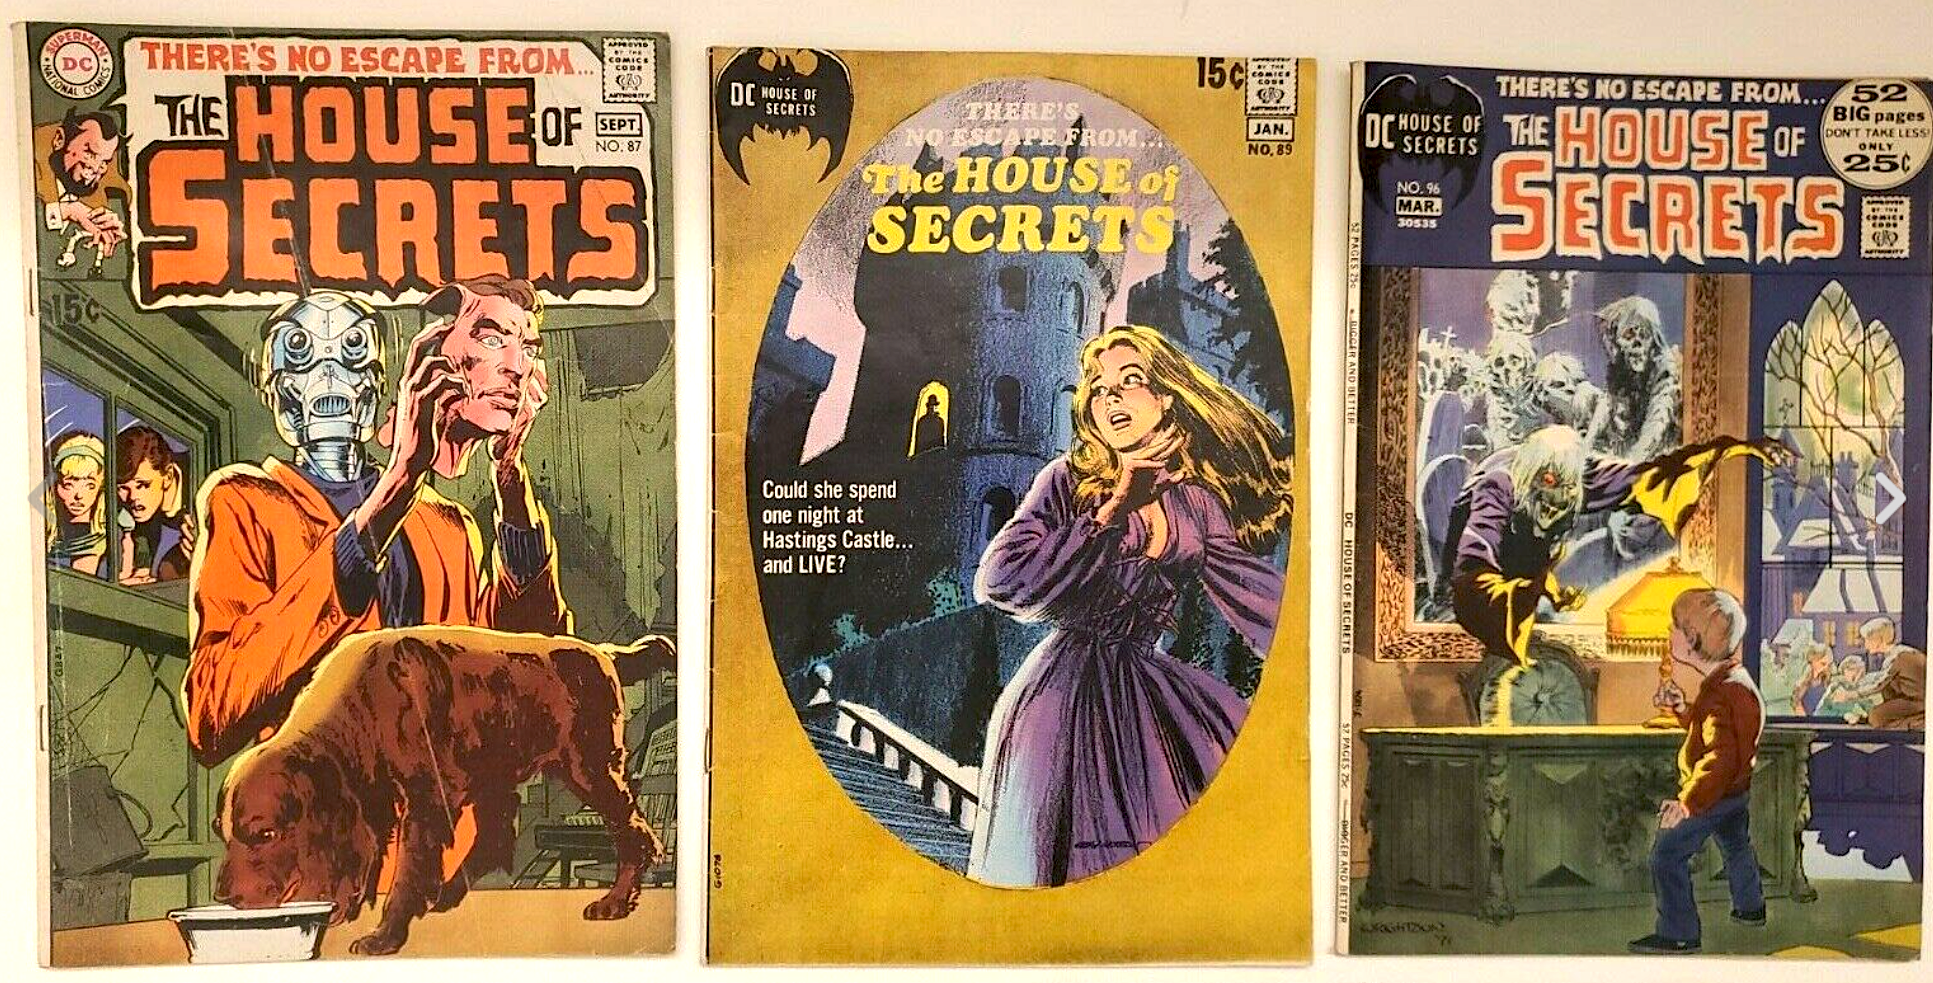 DC COMICS SILVER AGE THE HOUSE OF SECRETS No. 87 ,89 ,96 (3 issues)